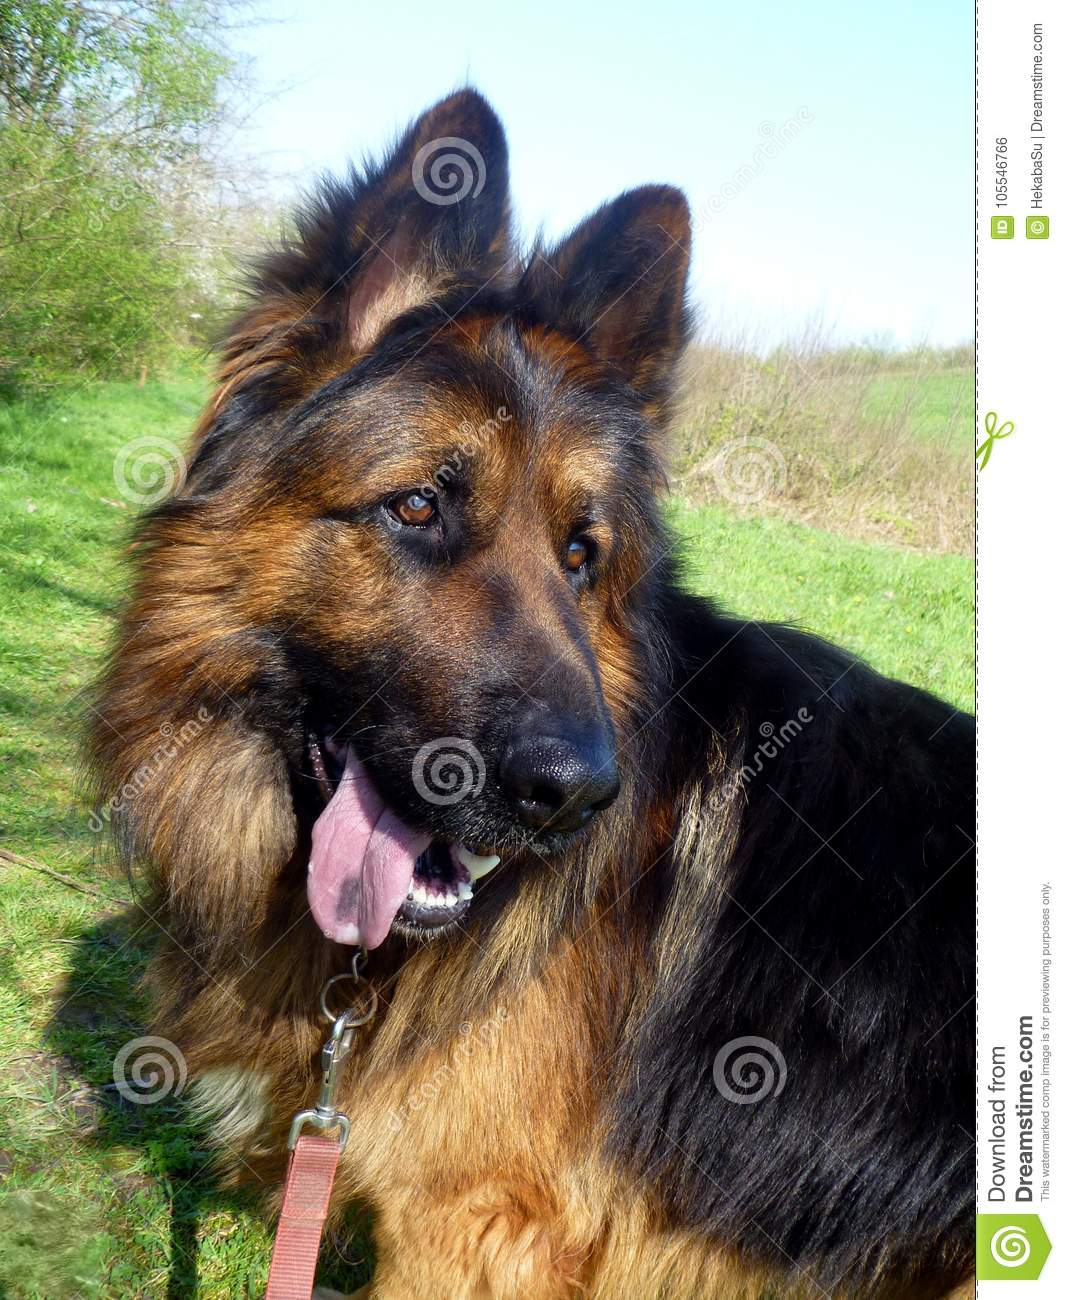 Funny German Shepherd With Open Mouth And Strange Look In His Eyes